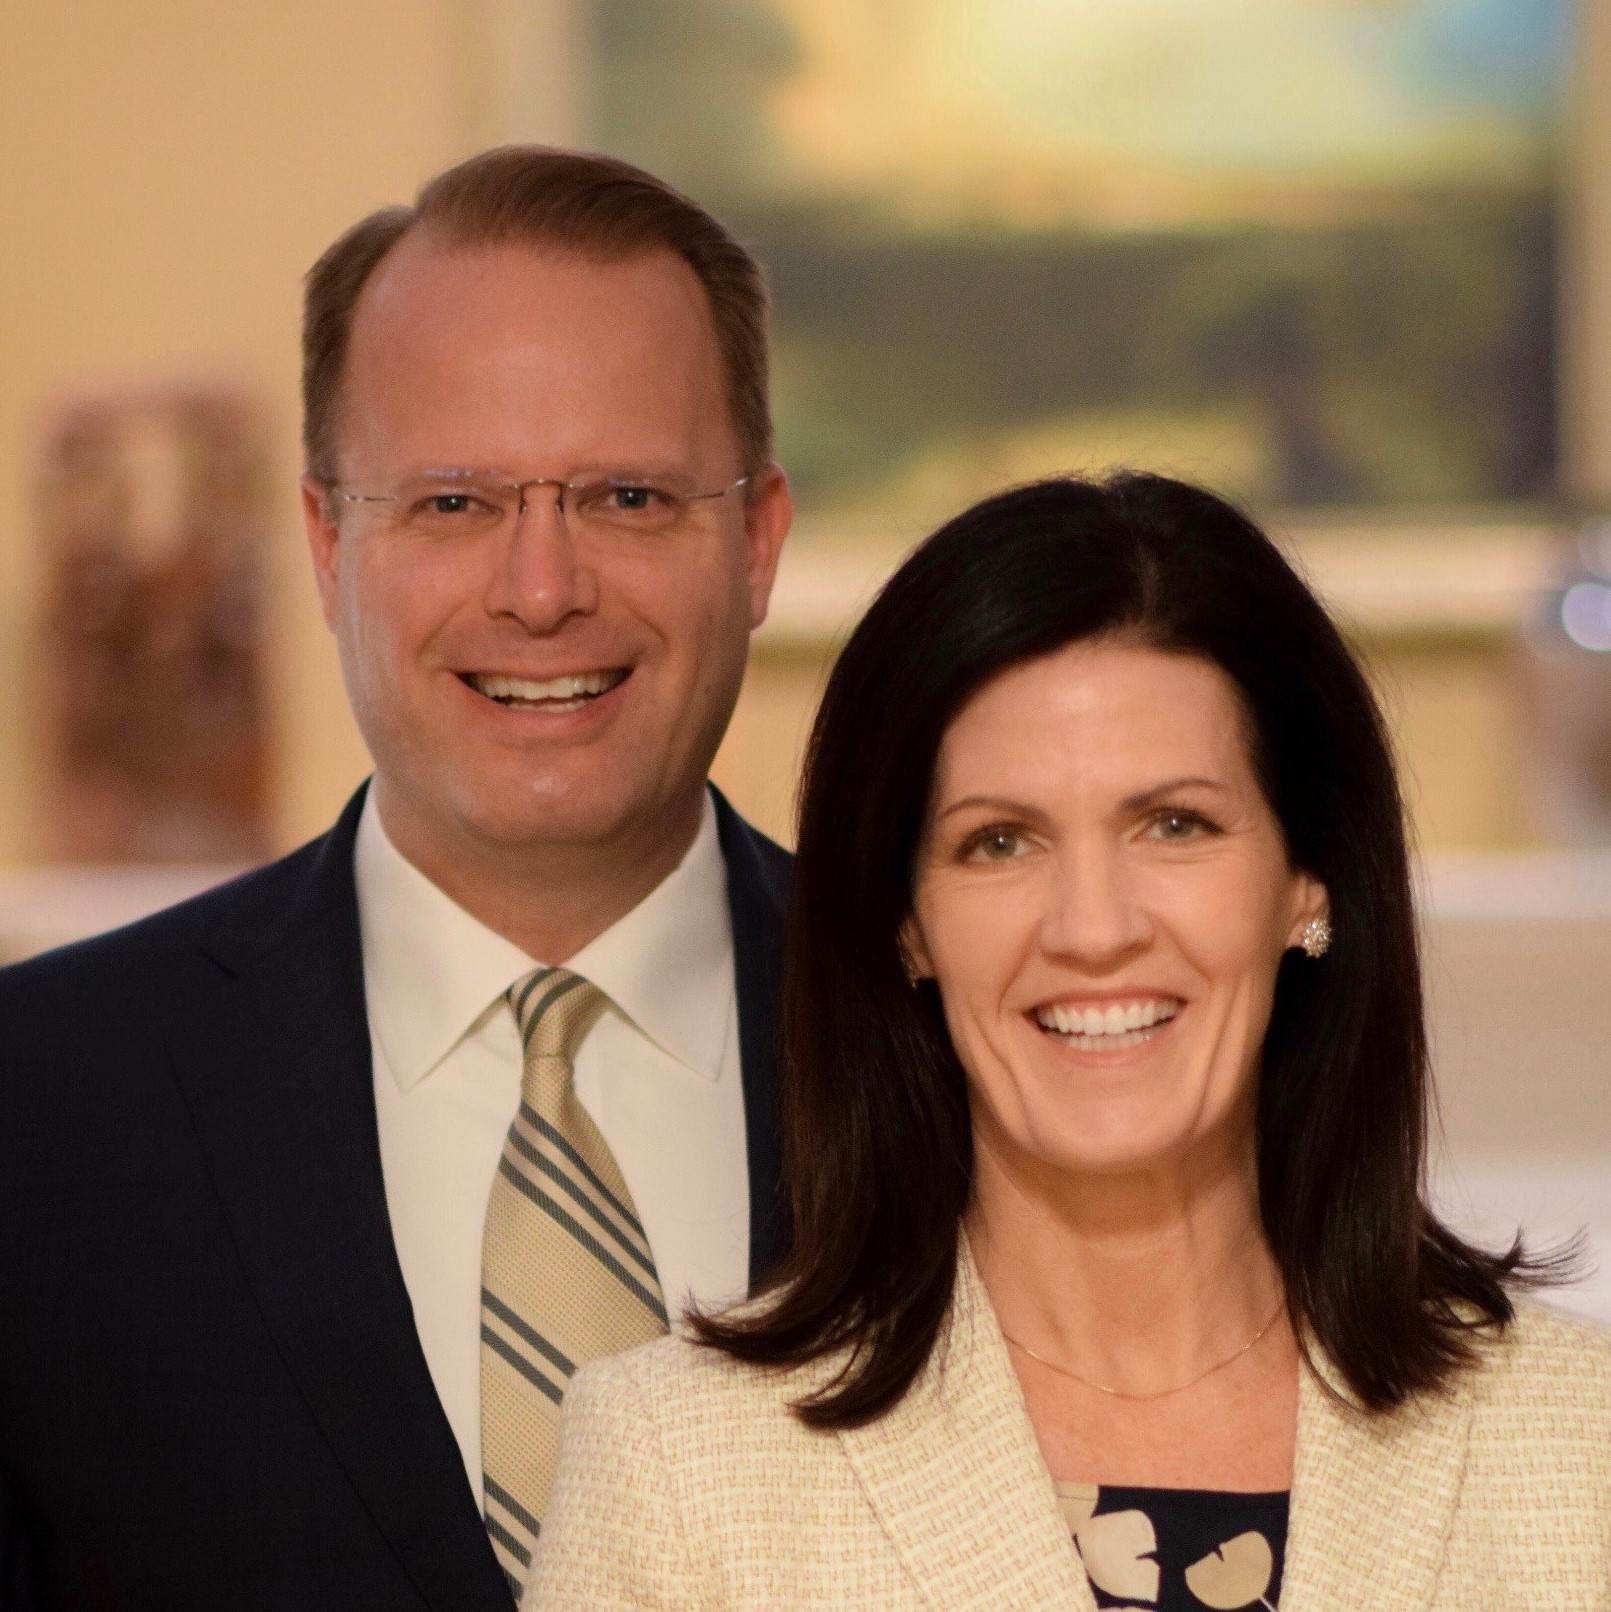 David L. and Stacy A. Chandler